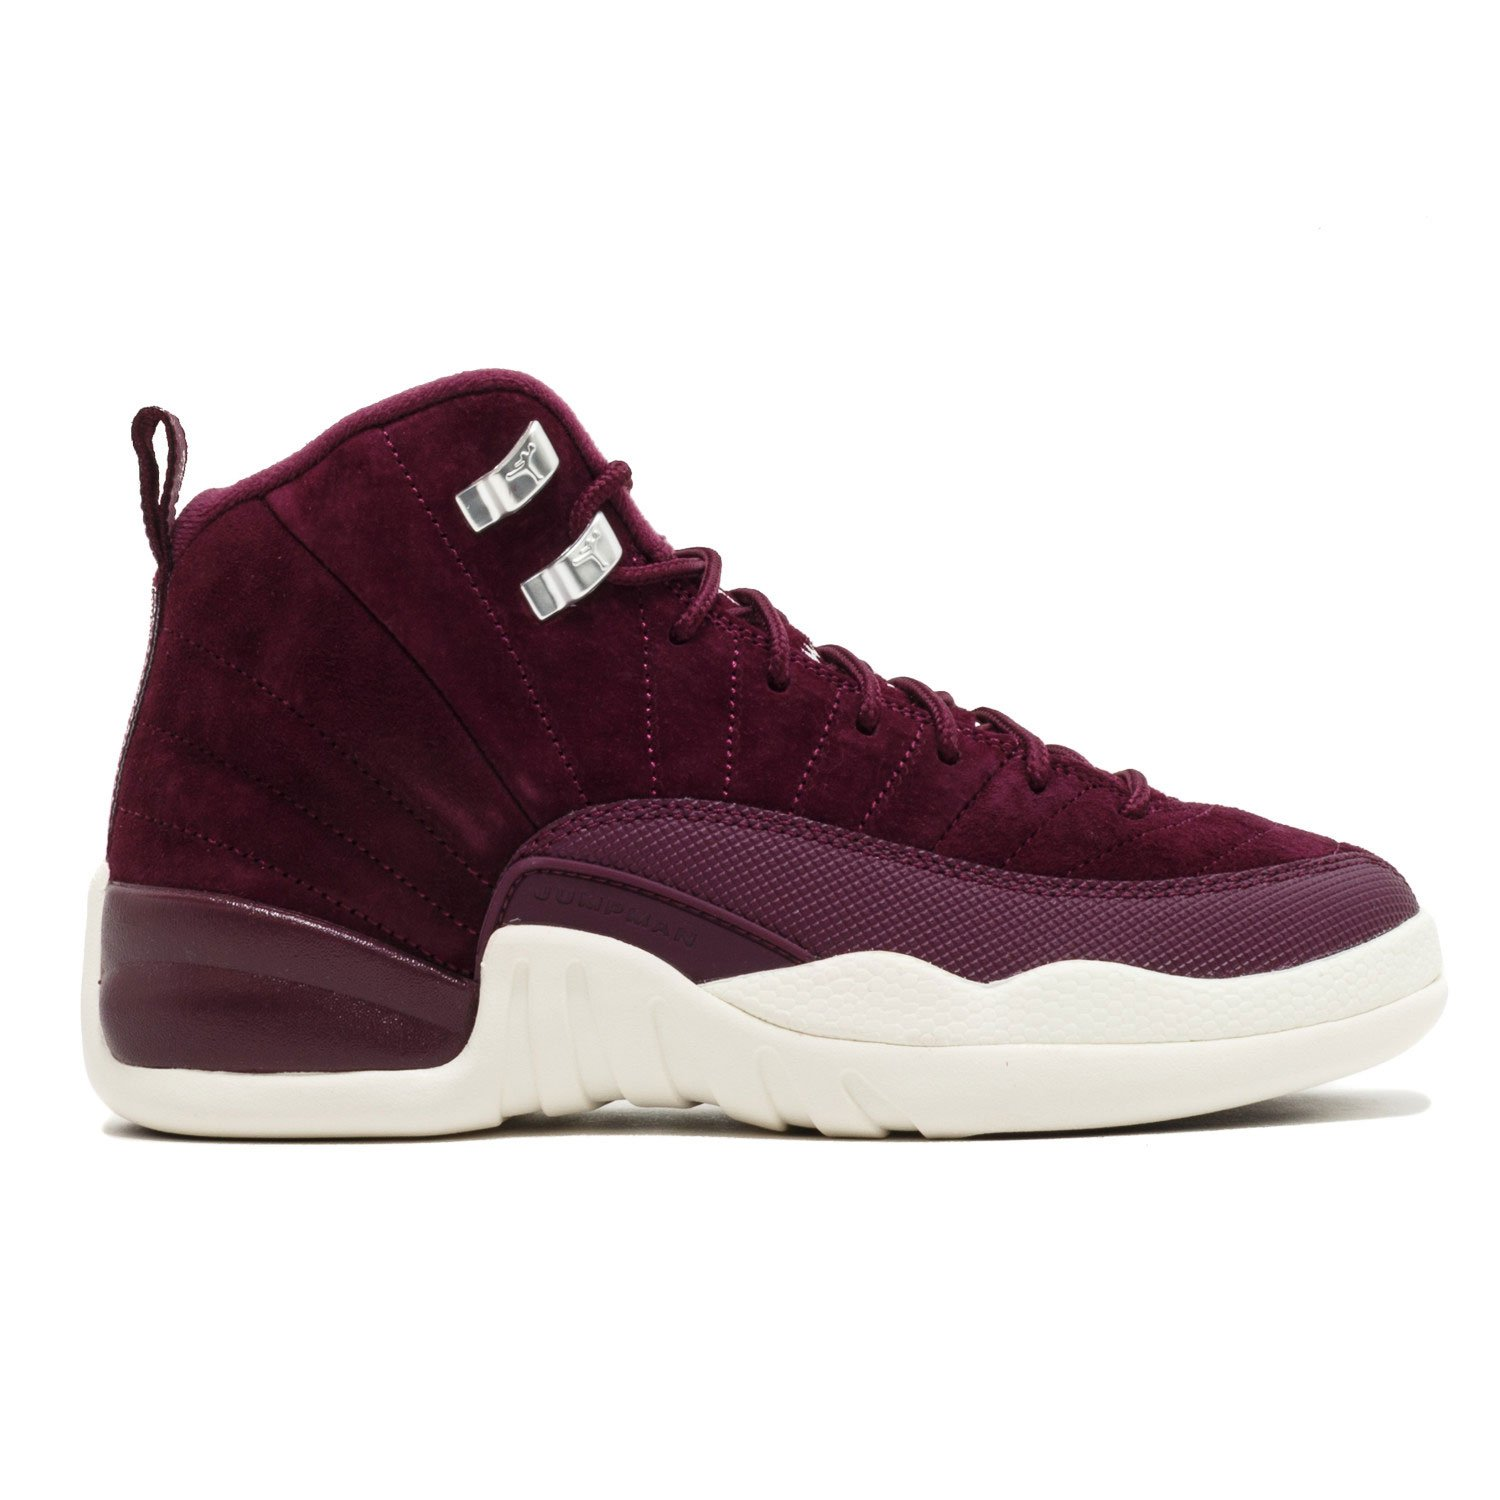 dbfd4acdee6fe1 Nike Air Jordan 12 Retro Bordeaux G.S Youth Big Kids Bordeaux Metallic  Silver Sail 153265-617 (6.5)